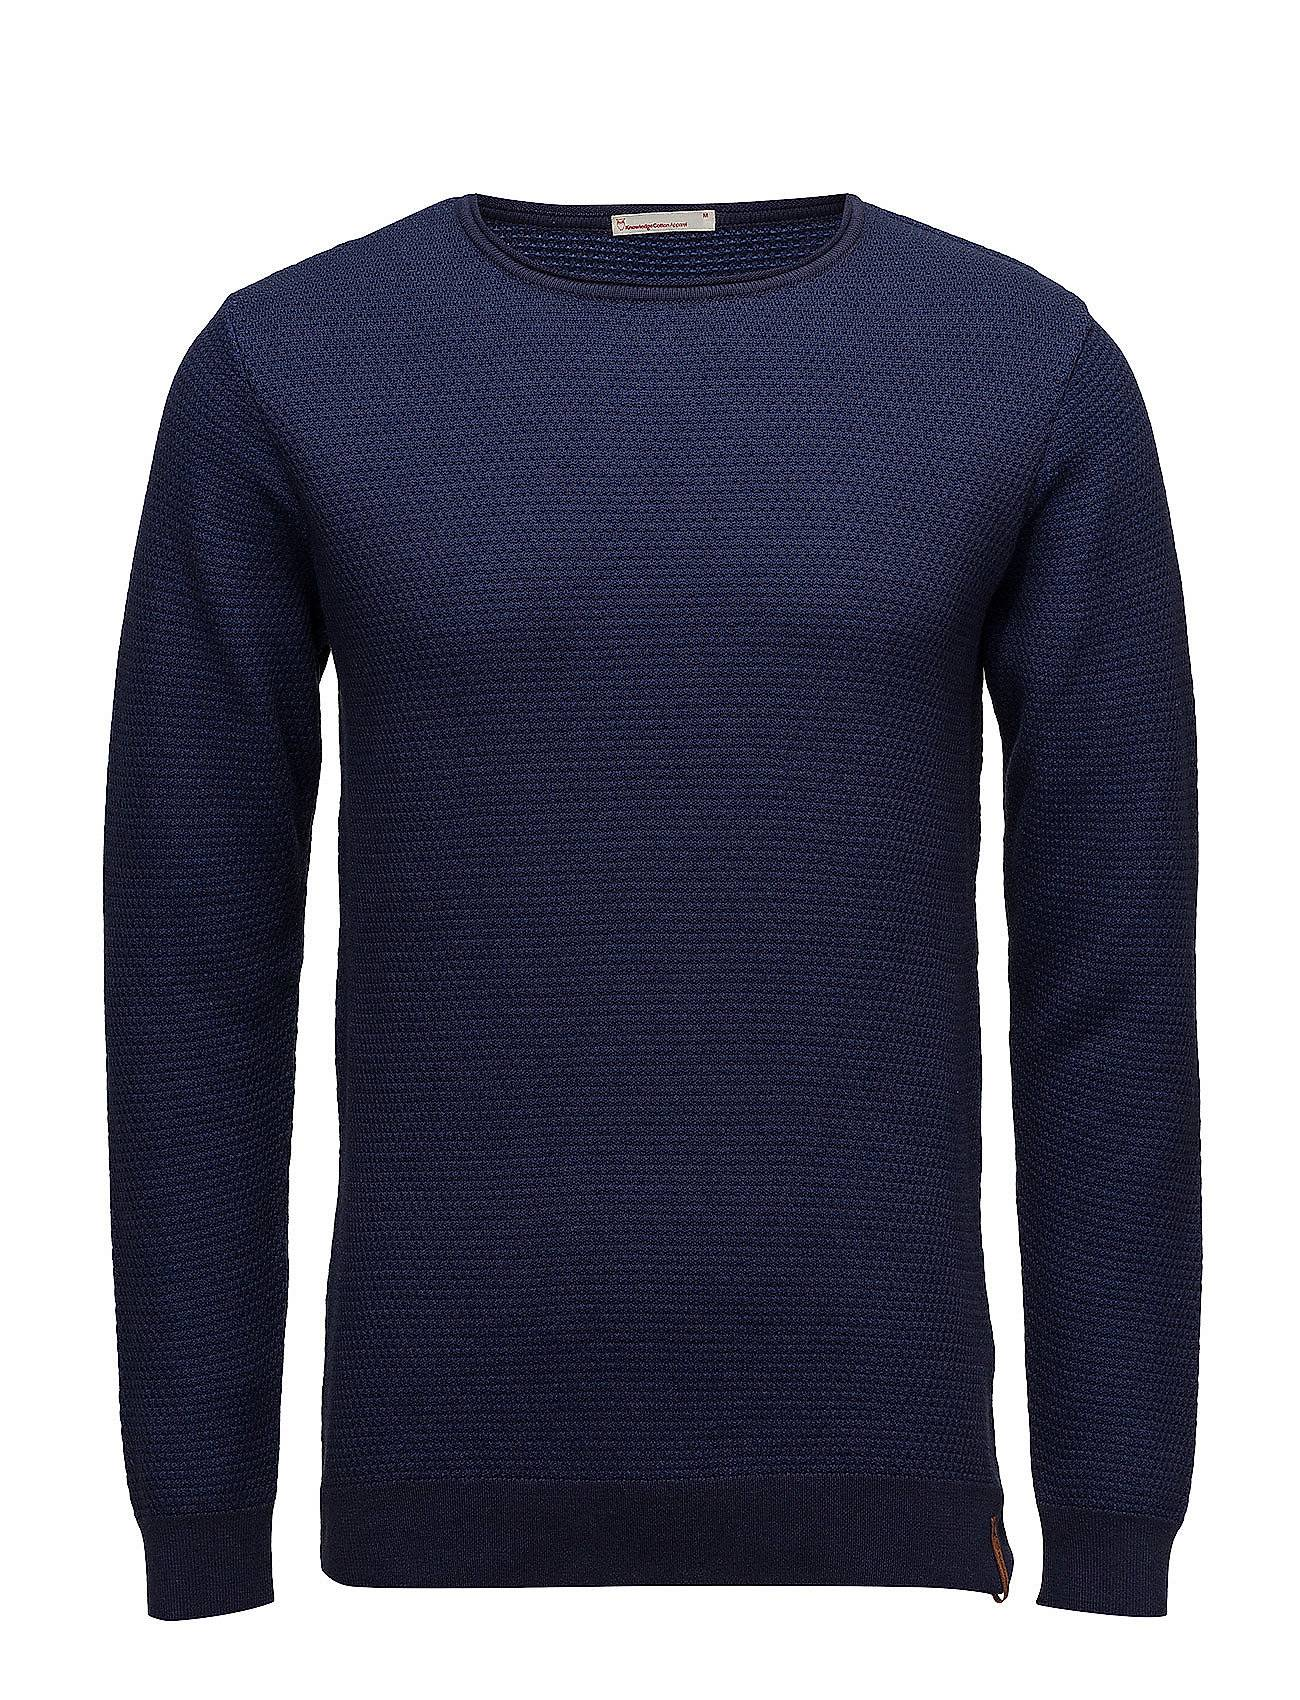 Knowledge Cotton Apparel Two Toned Round Neck Knit - Gots